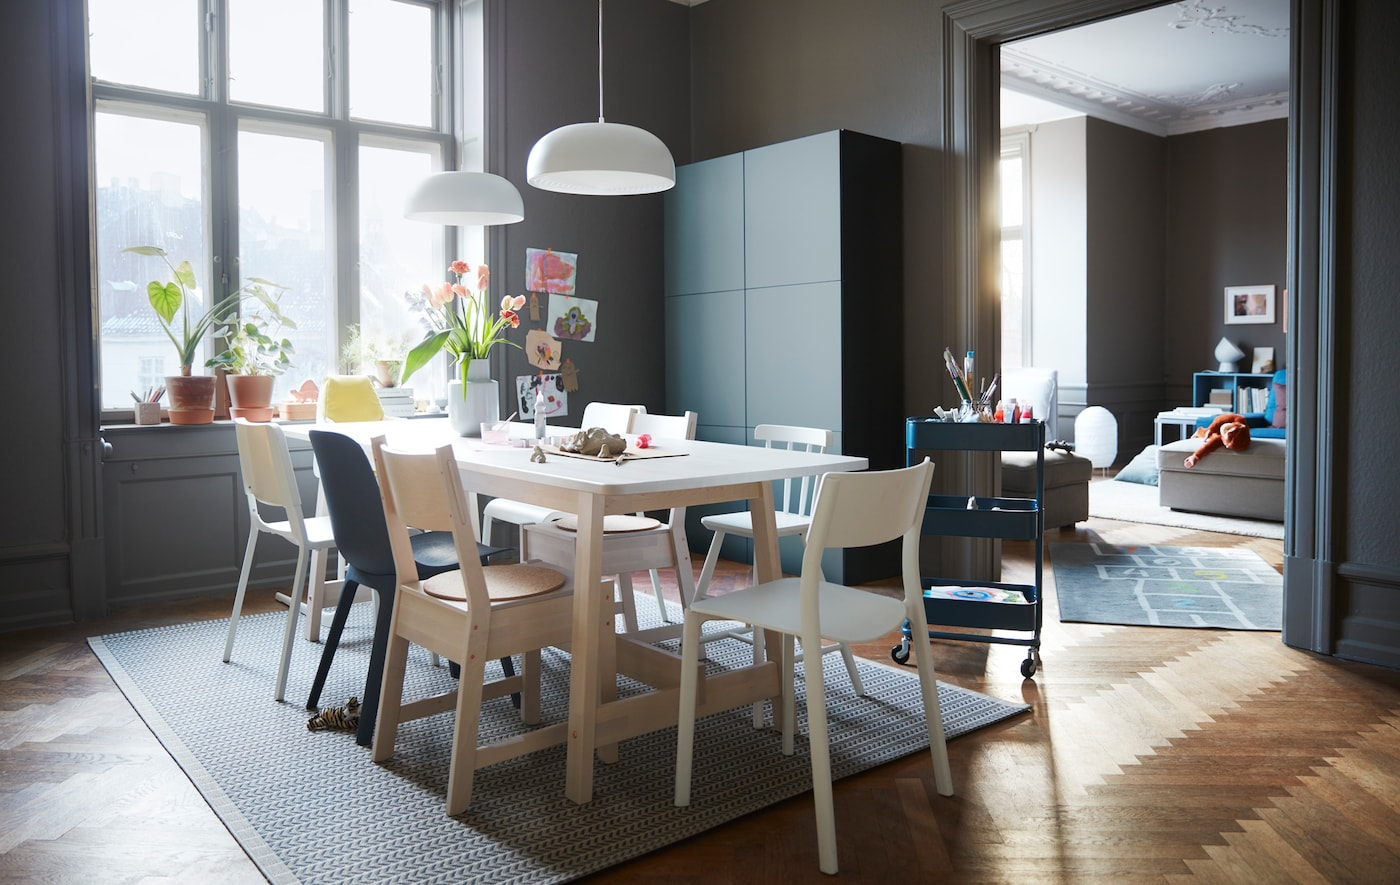 A dining room with multi-coloured chairs around a white topped table and an IKEA BESTÅ grey/turquoise storage combination.